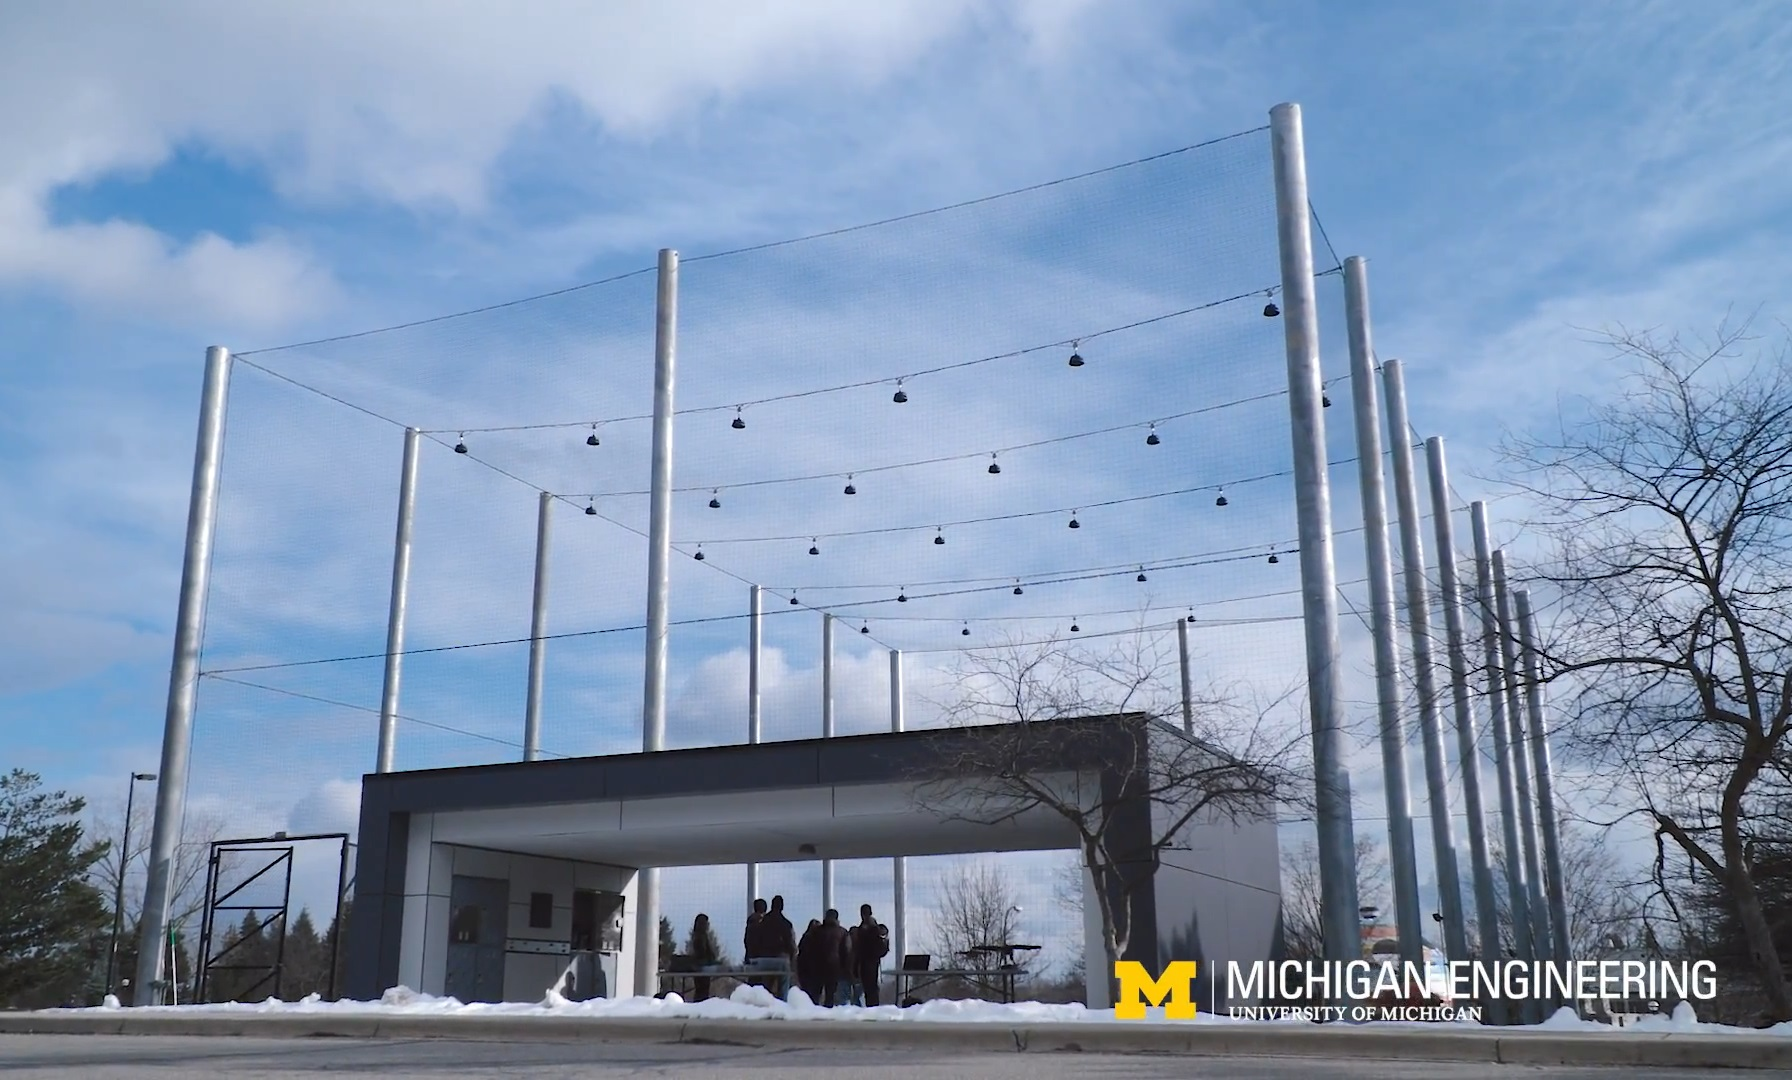 University of Michigan opens up its M-Air UAV testing